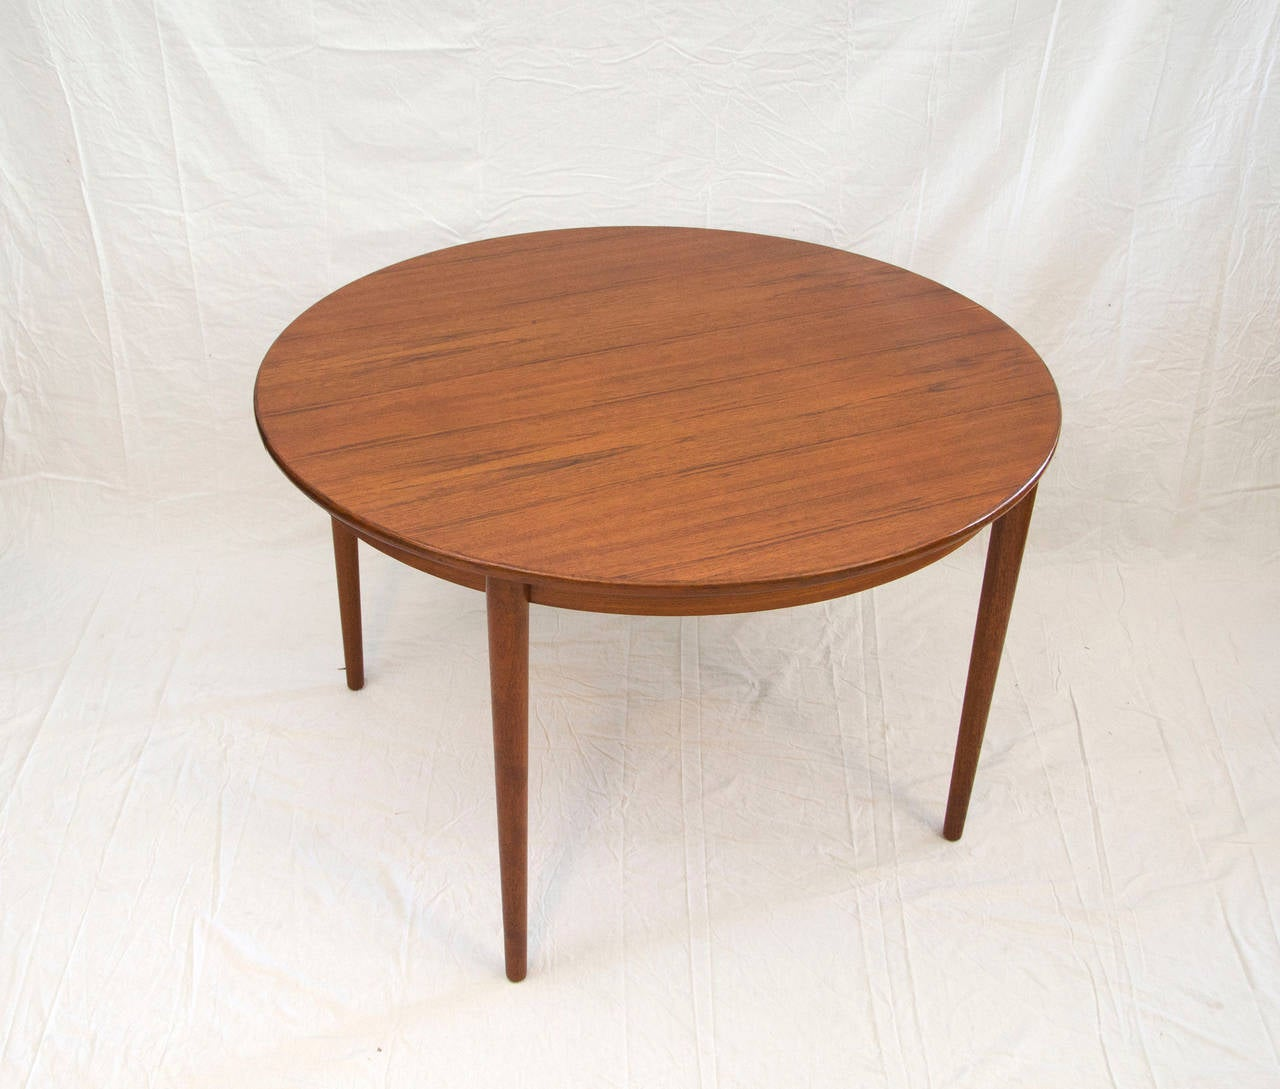 Danish Round Teak Dining Table With Two Leaves By Moreddi At 1stdibs